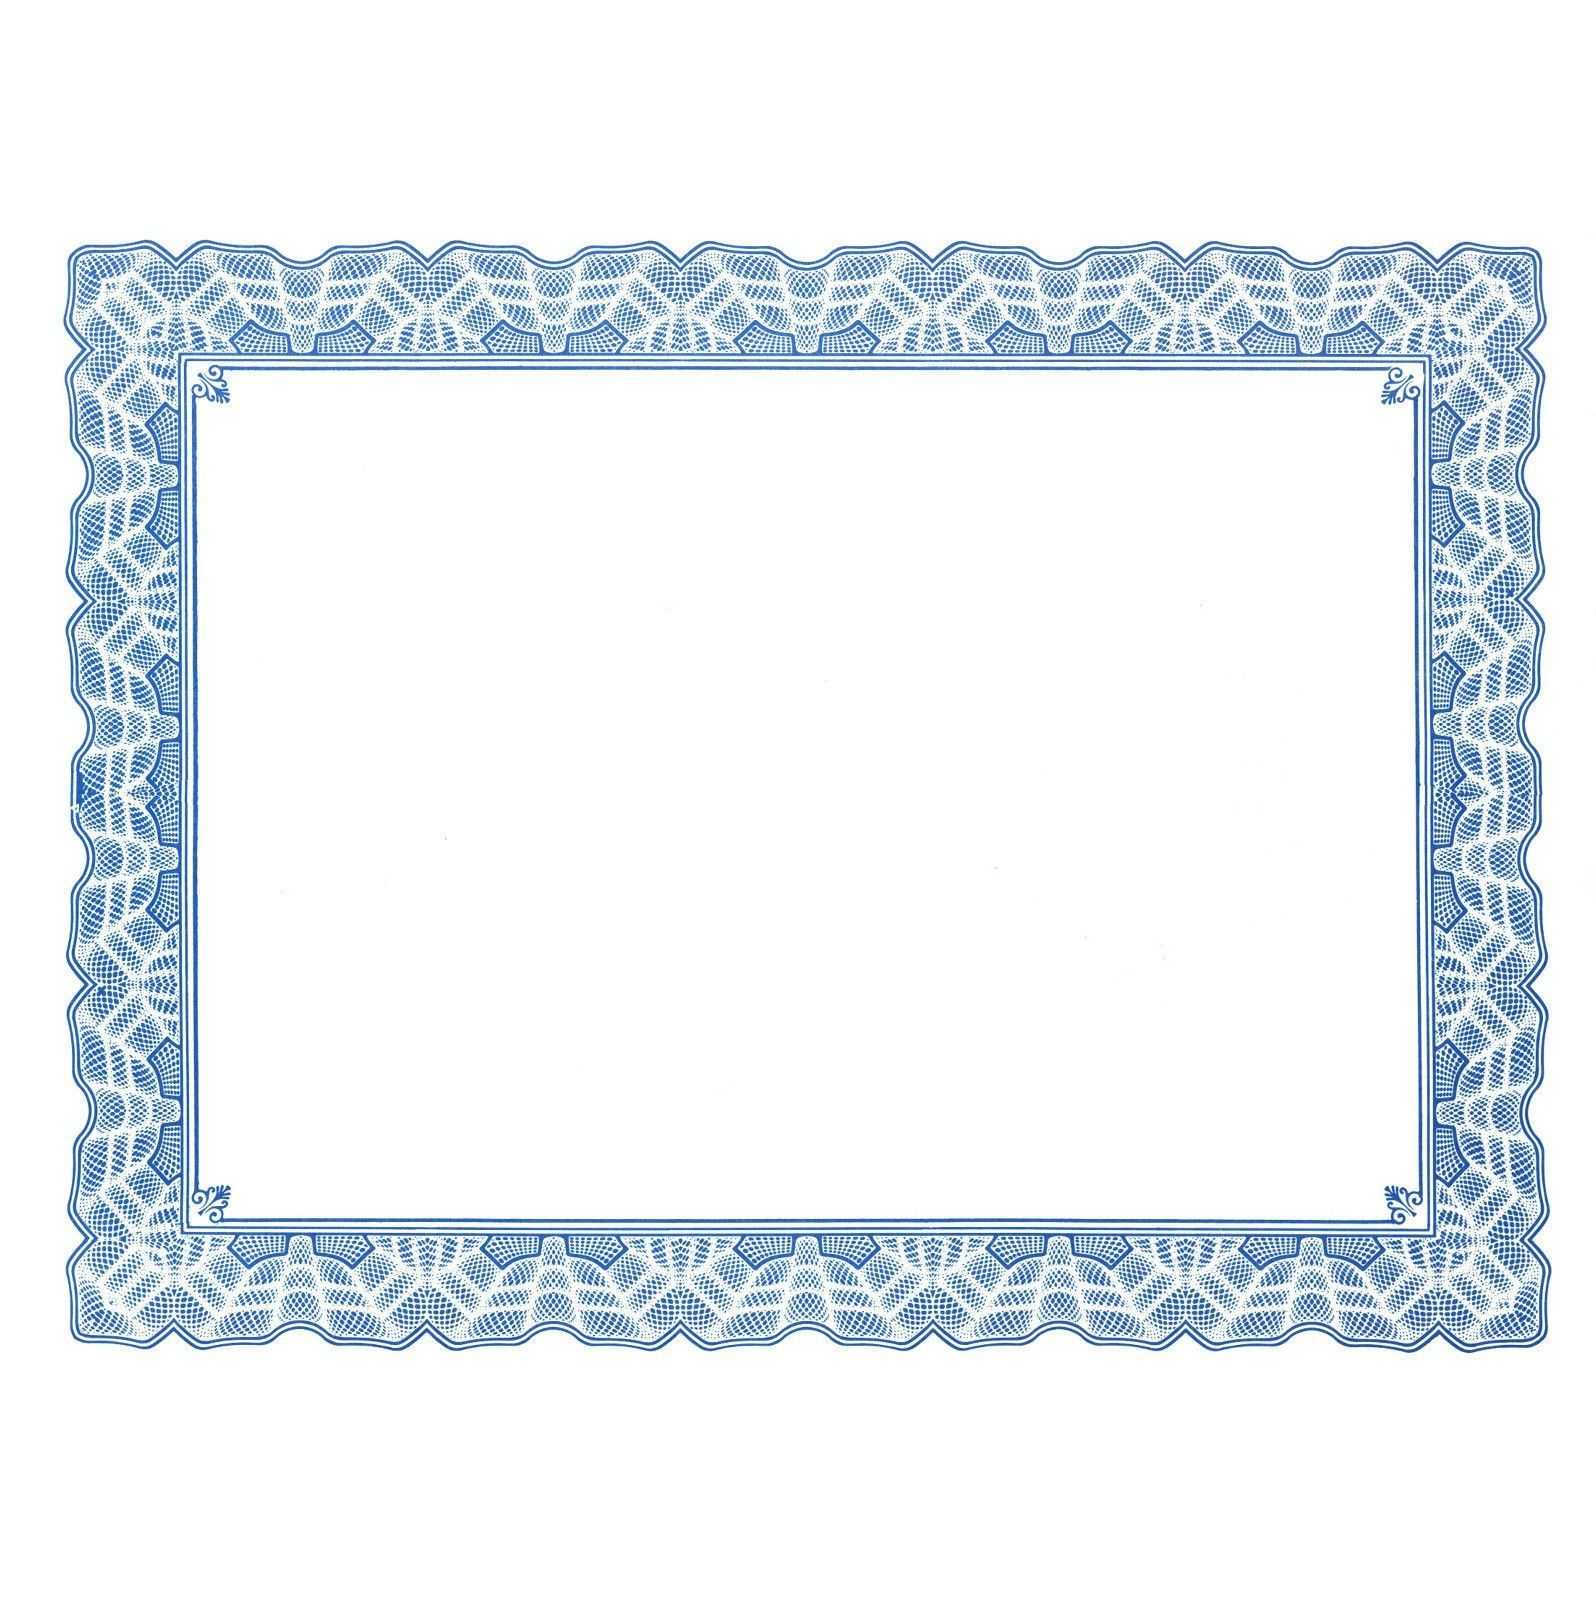 Certificate Border Templates For Word  In 2019 In Free Printable Certificate Border Templates